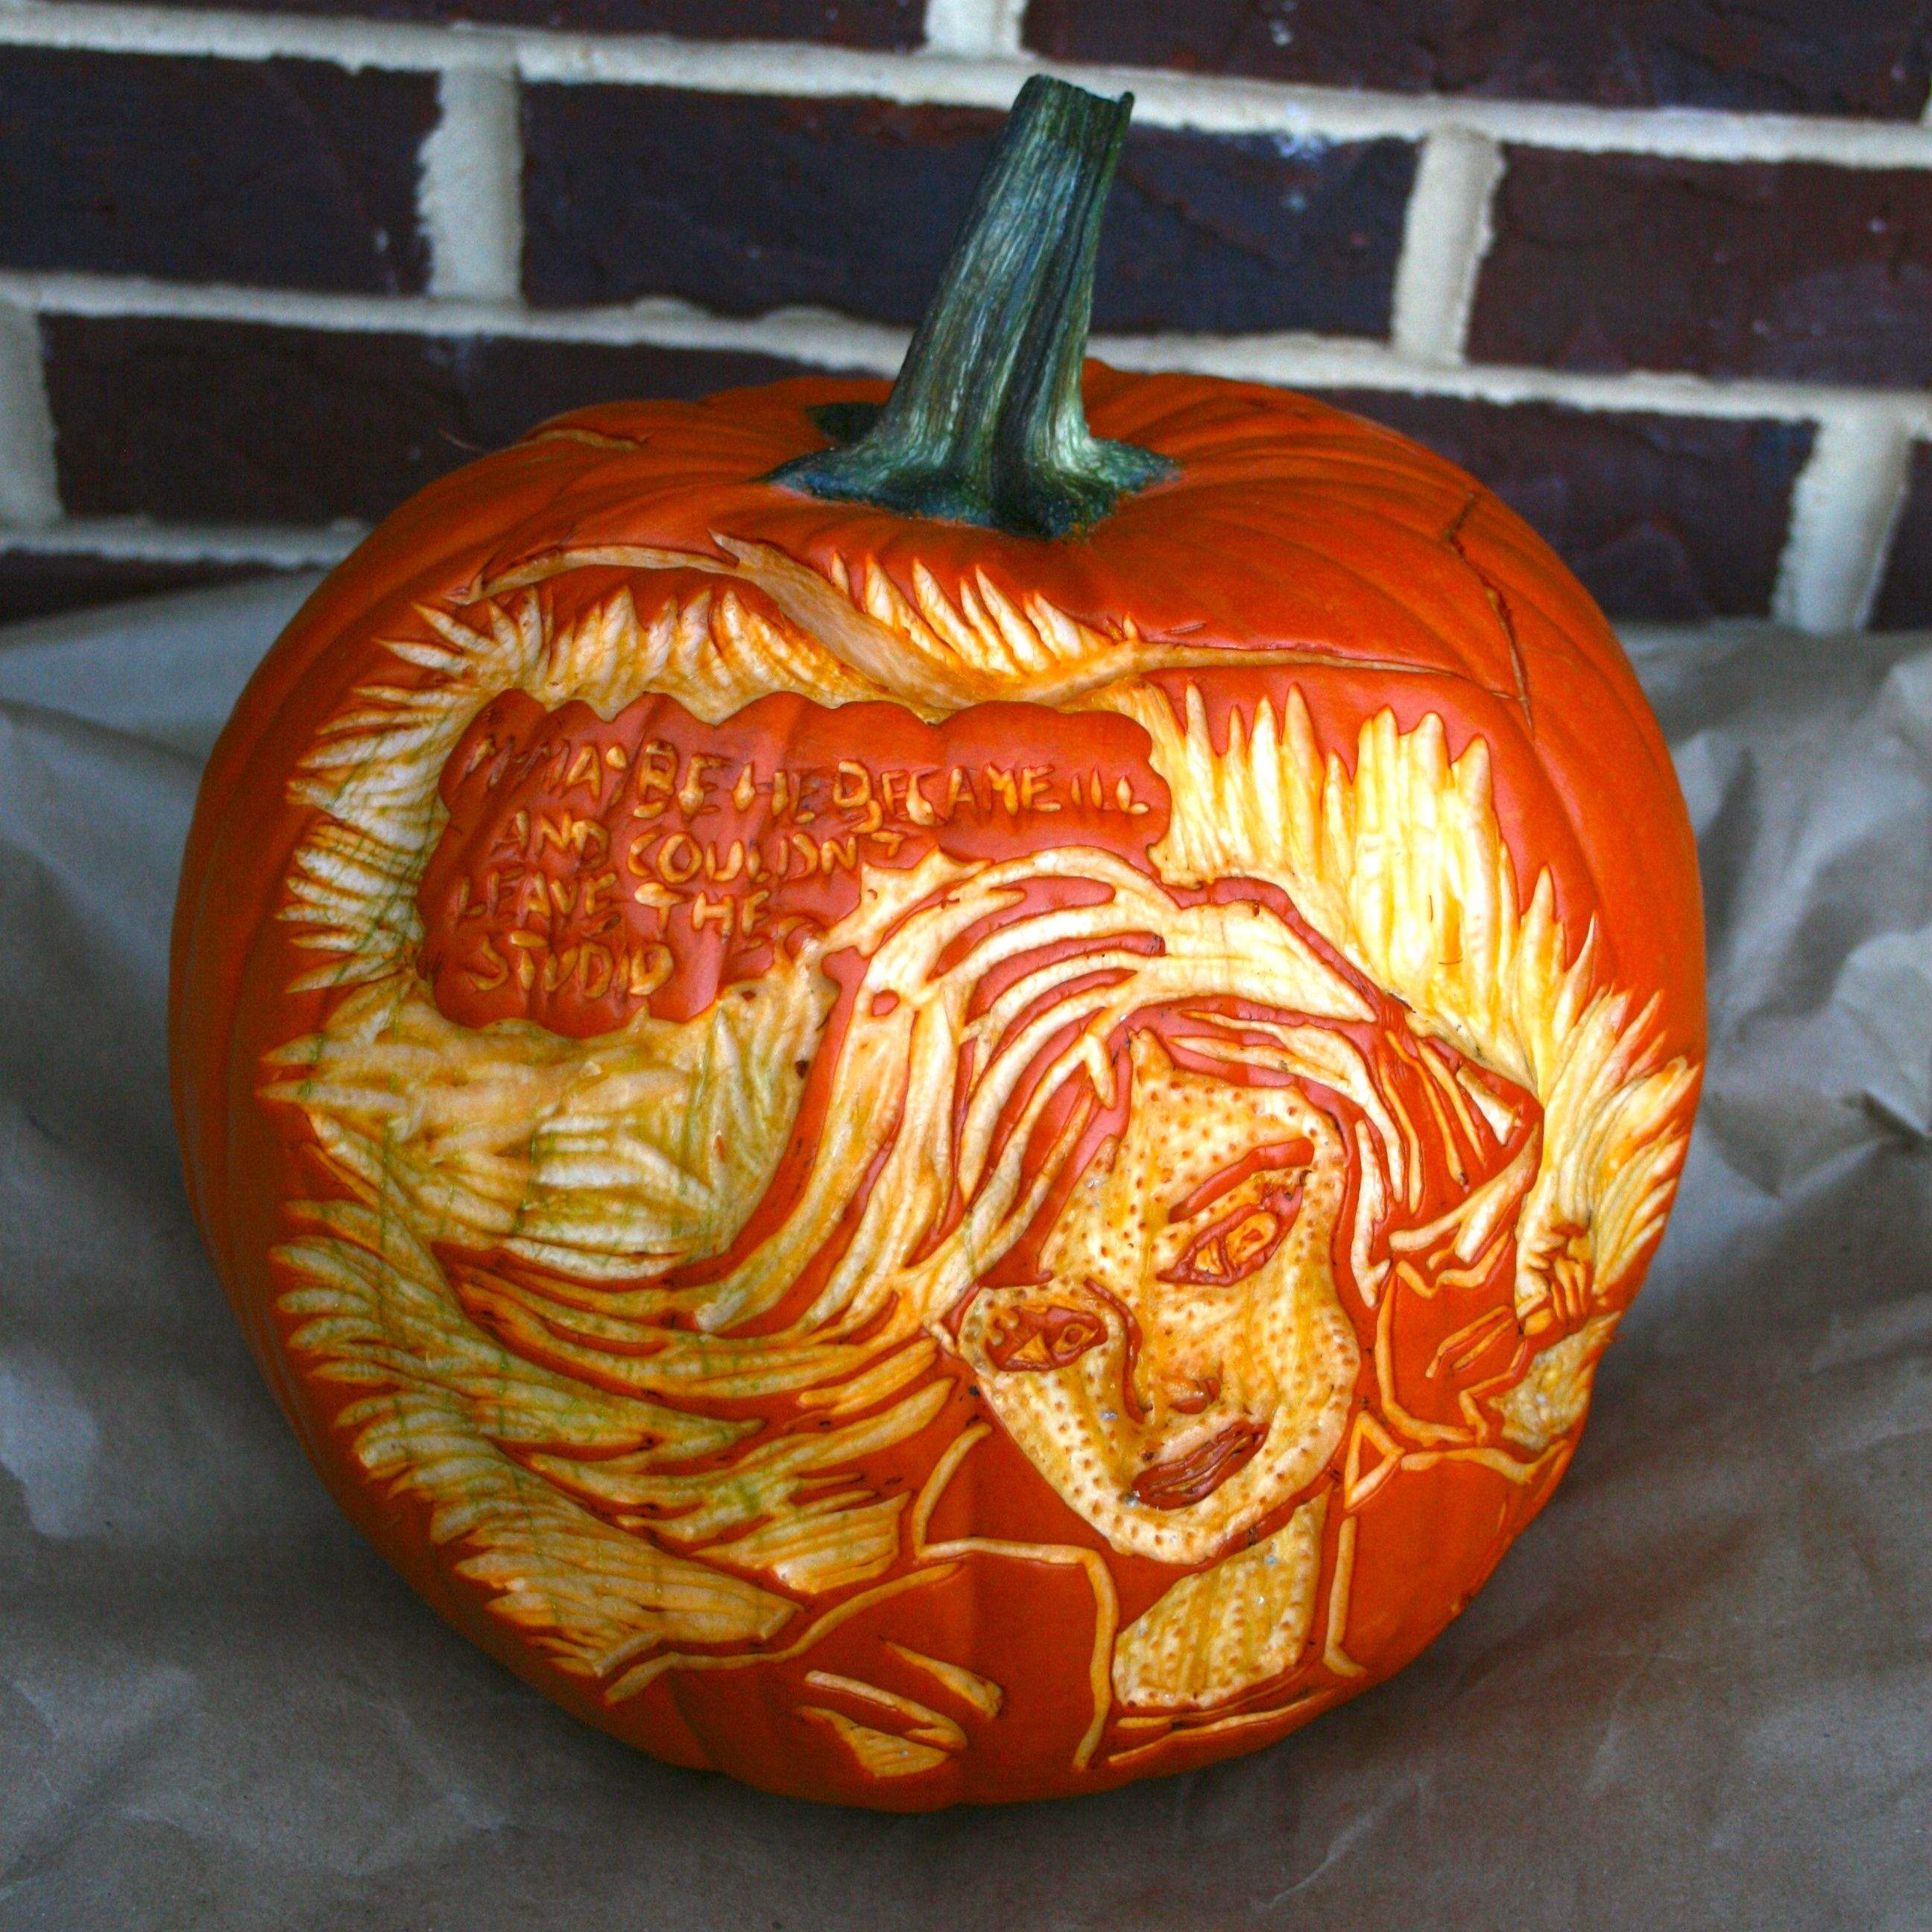 Craft project artistic pumpkin carving